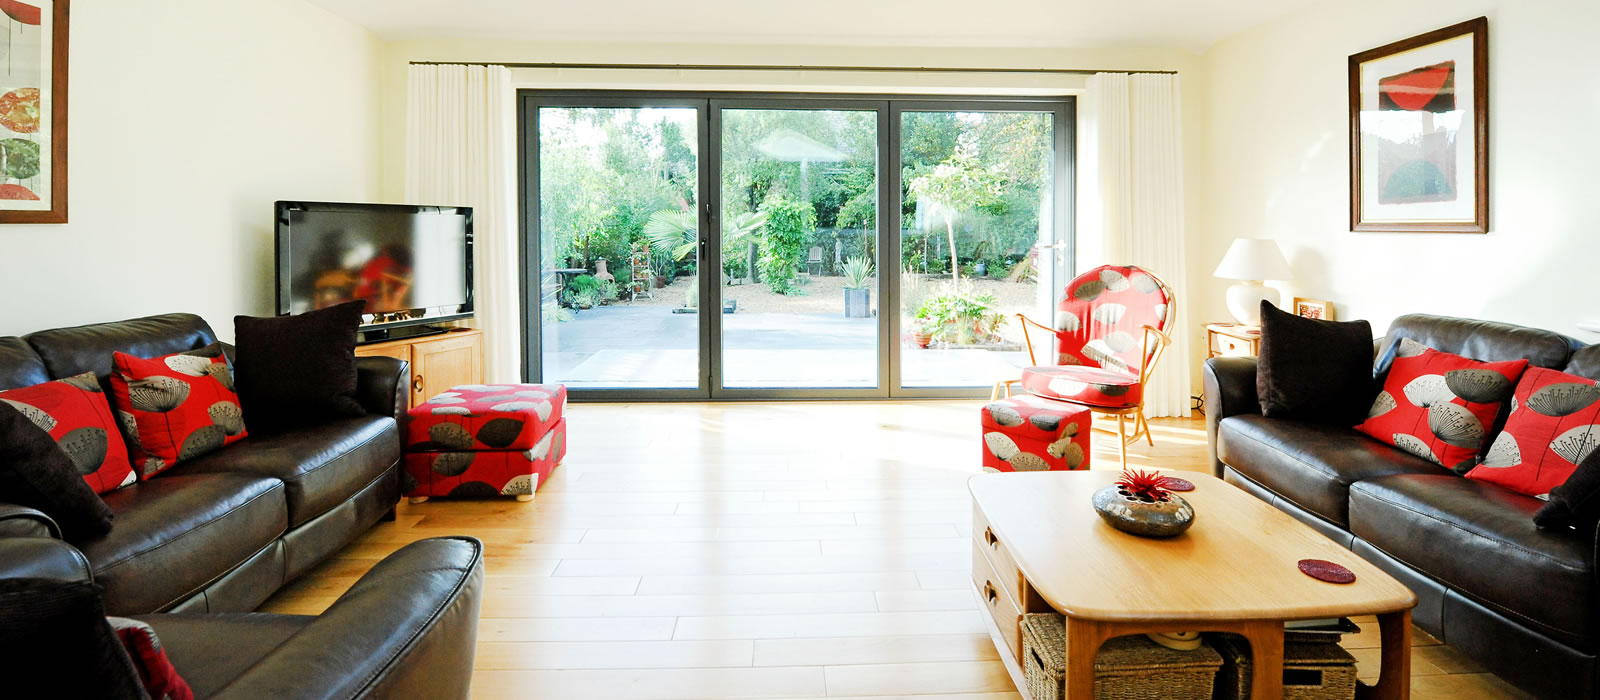 Flood your room with natural light